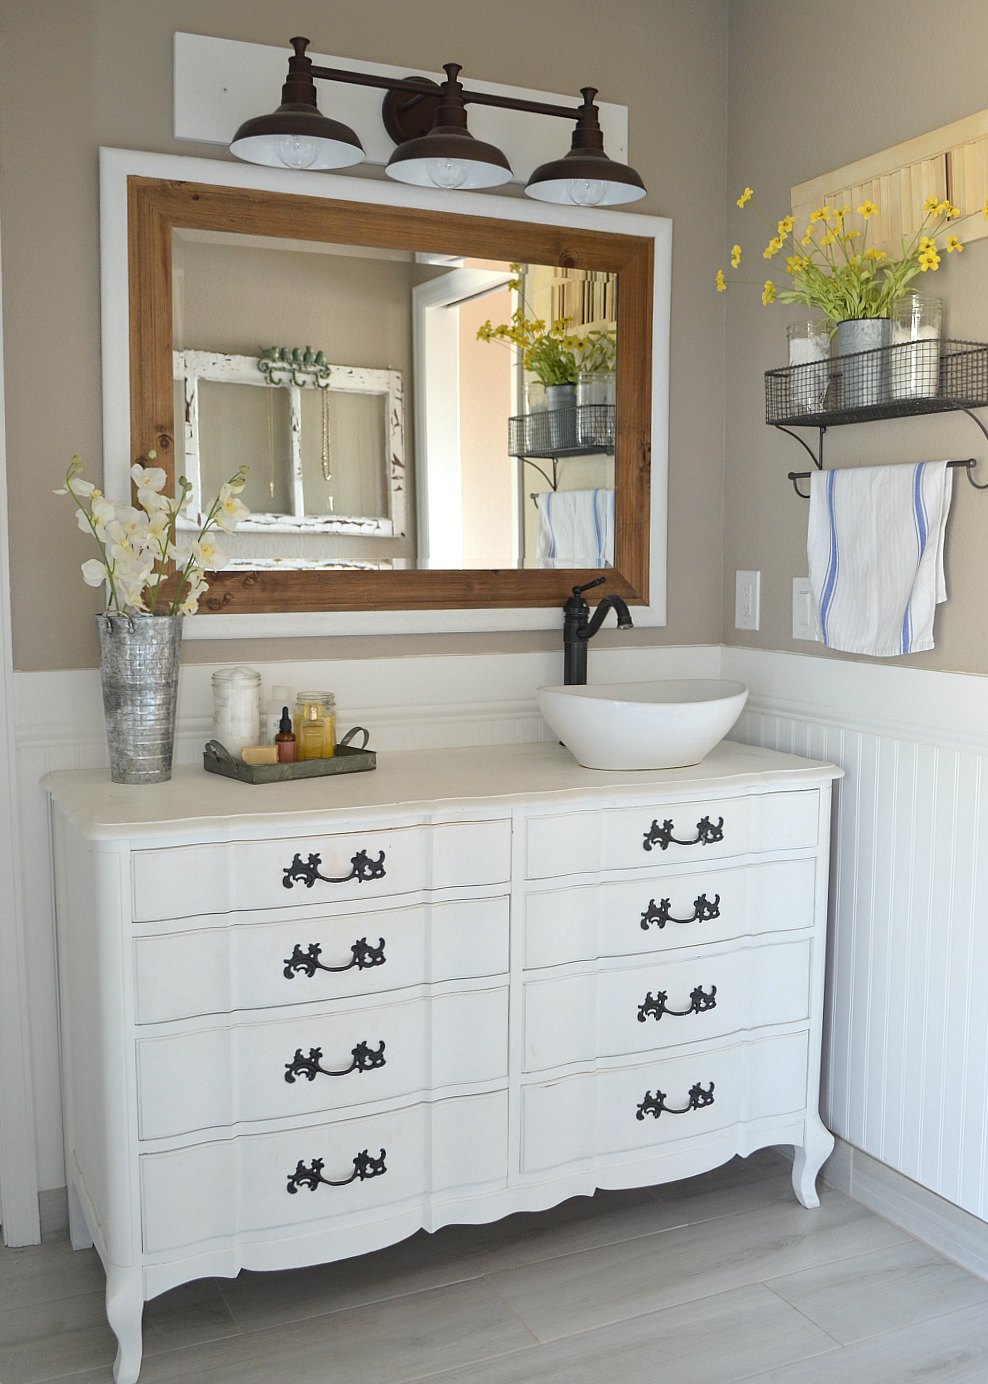 A modern farmhouse bathroom. An honest review of chalk painted bathroom vanities.